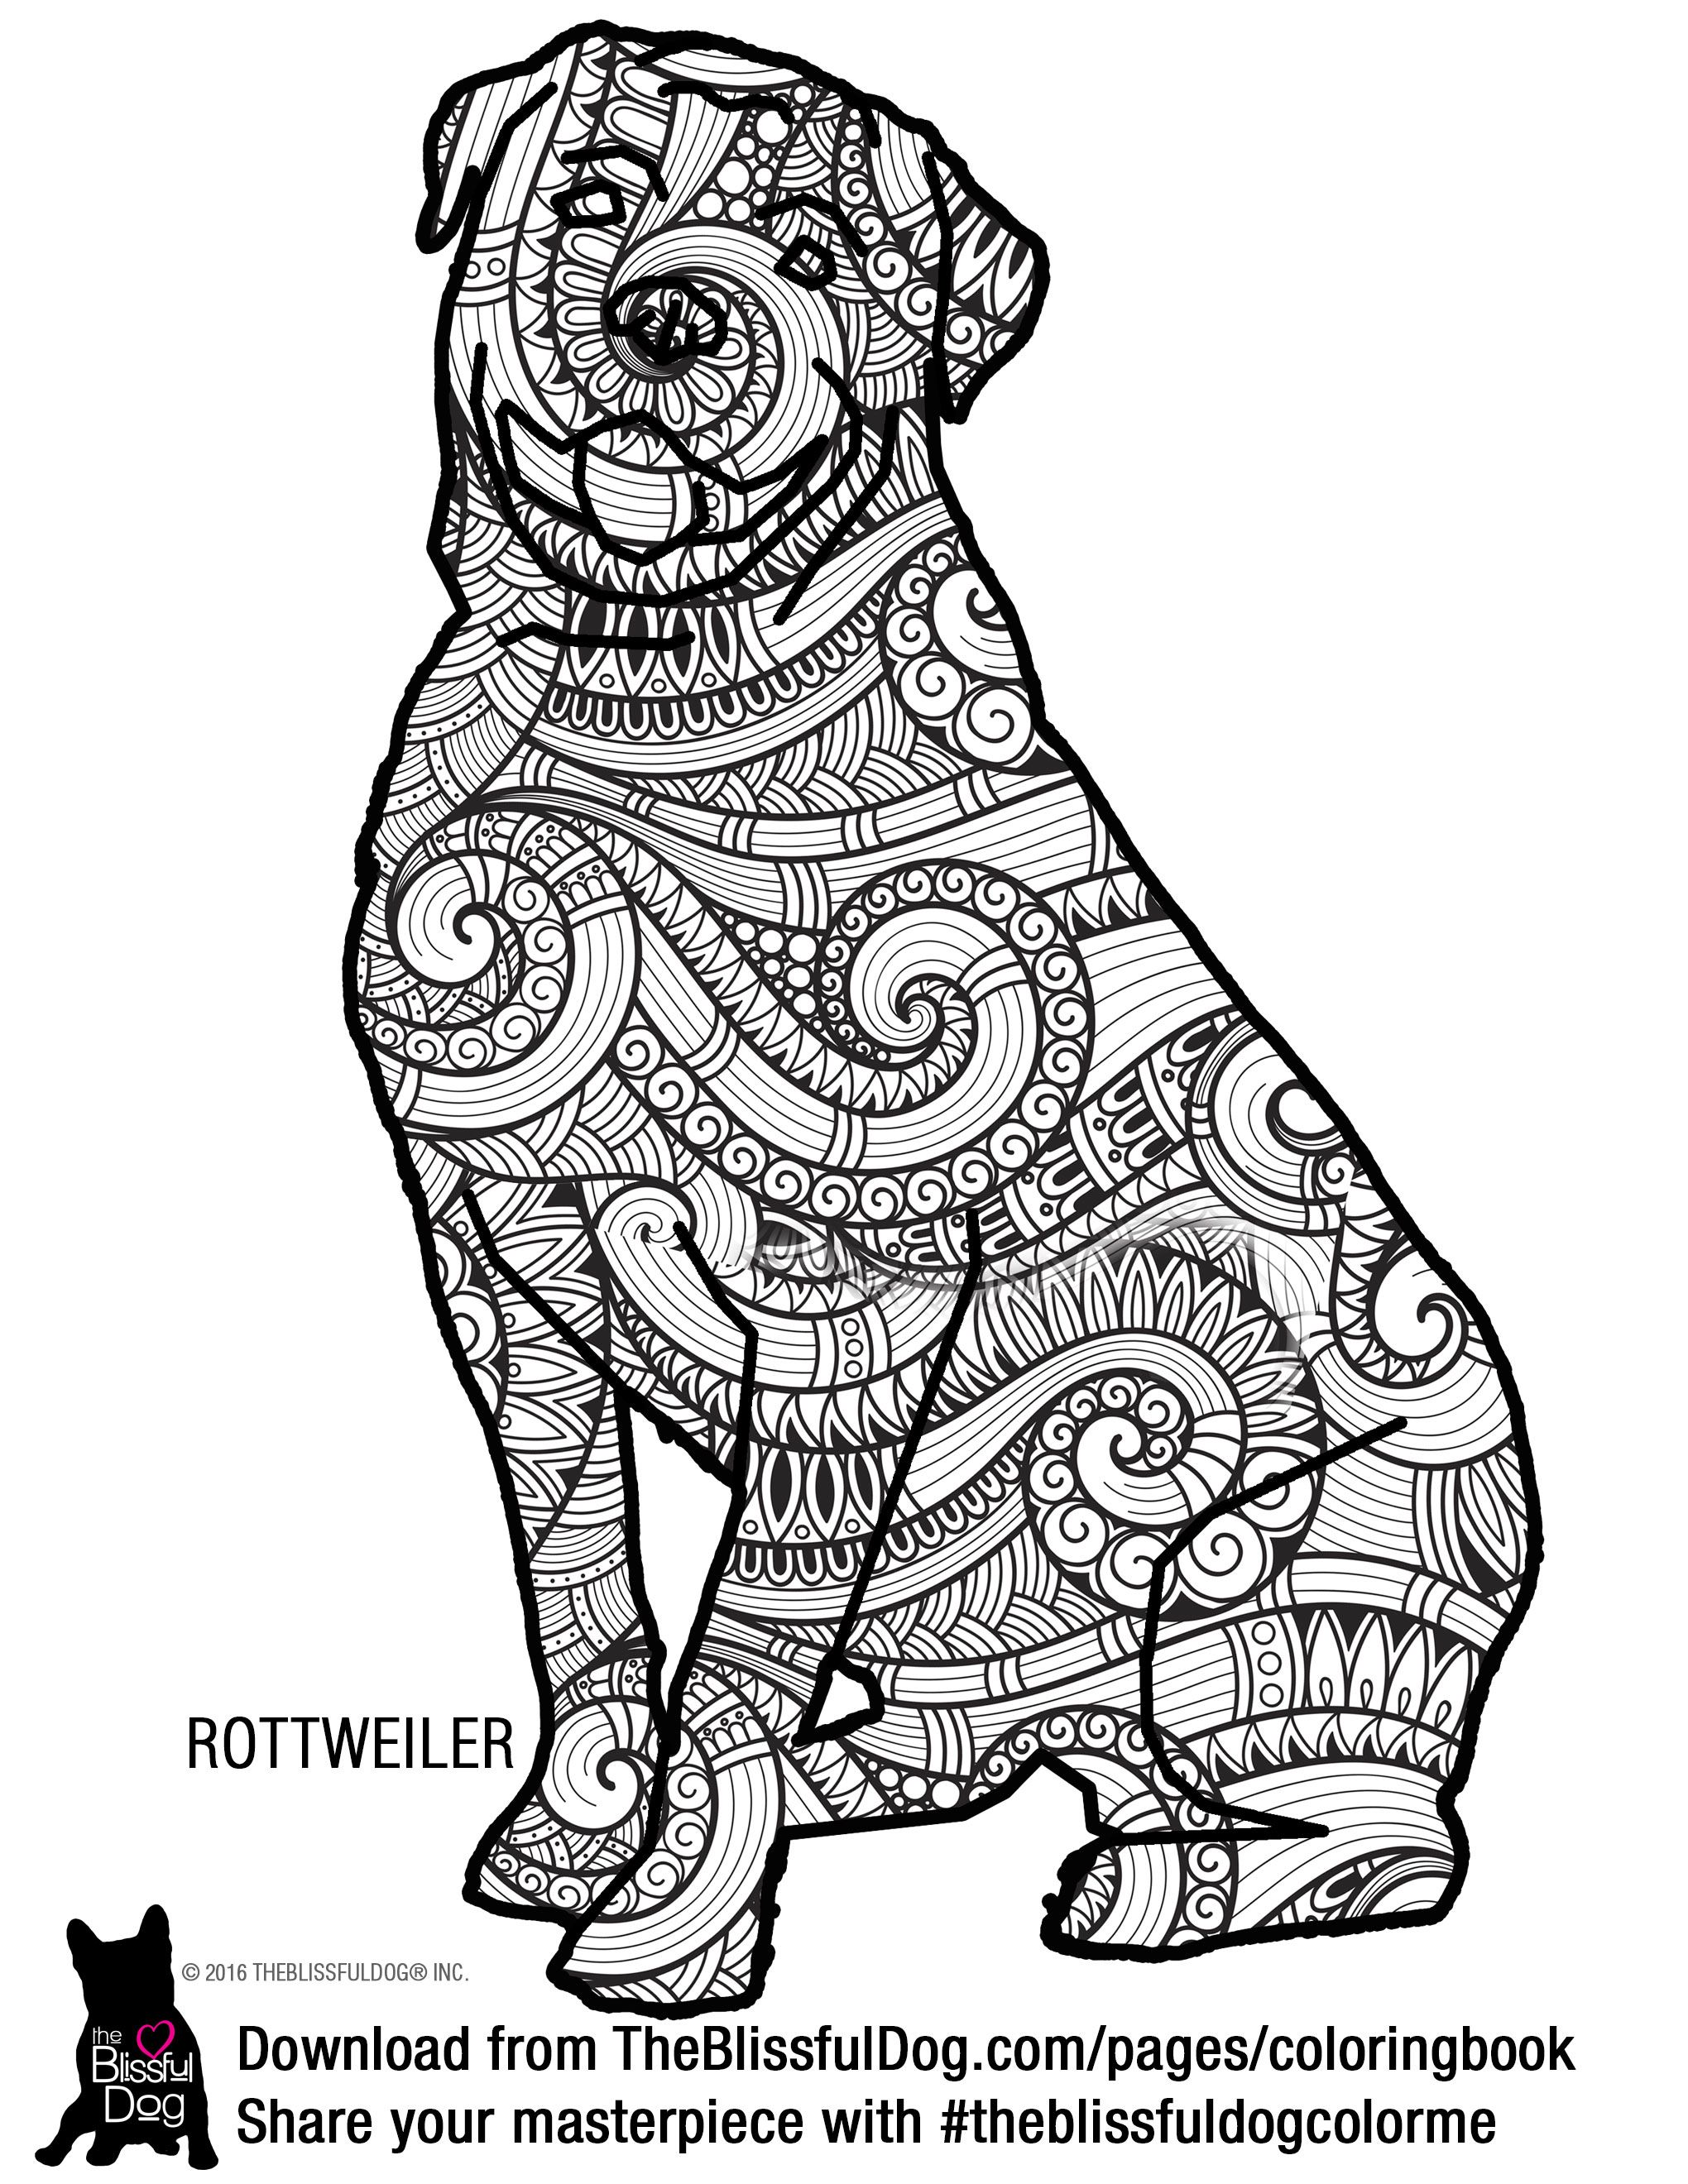 Coloring Book | Pinterest | Rottweiler, Coloring books and Dog breeds